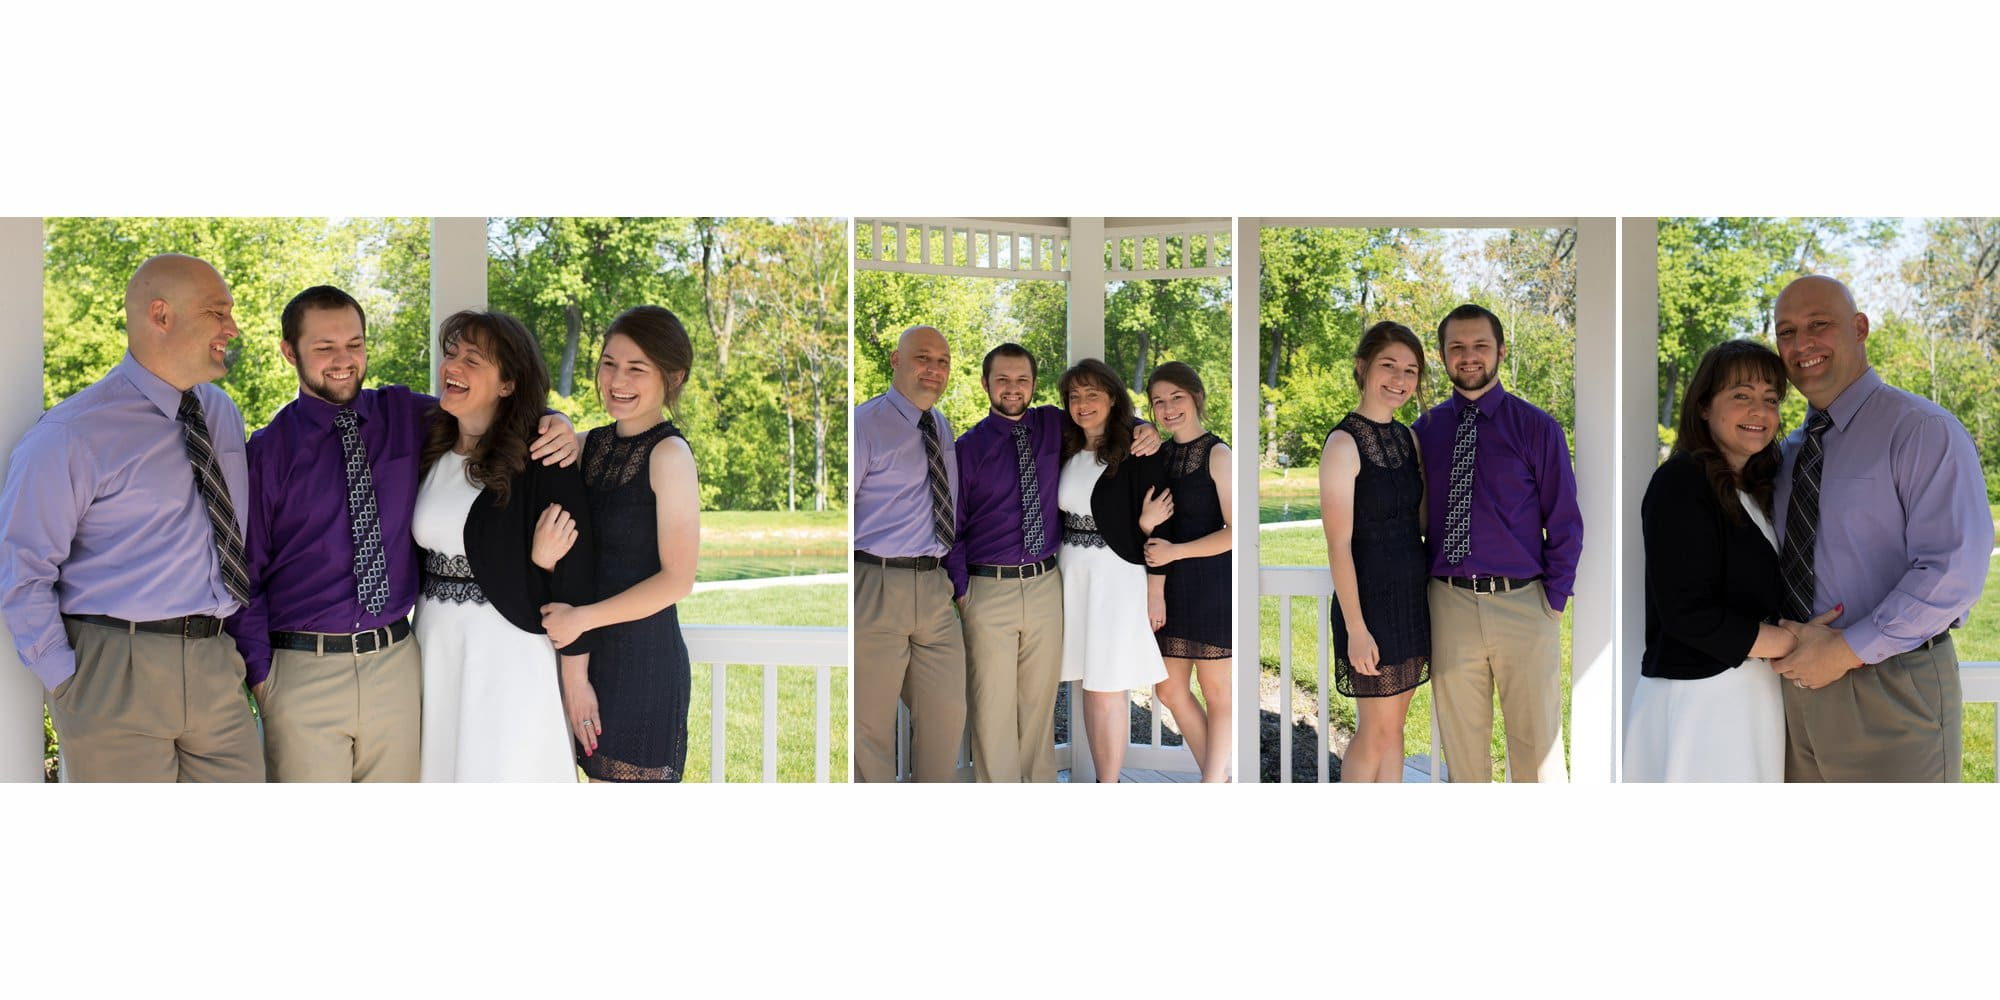 QS Brunke Family Pictures